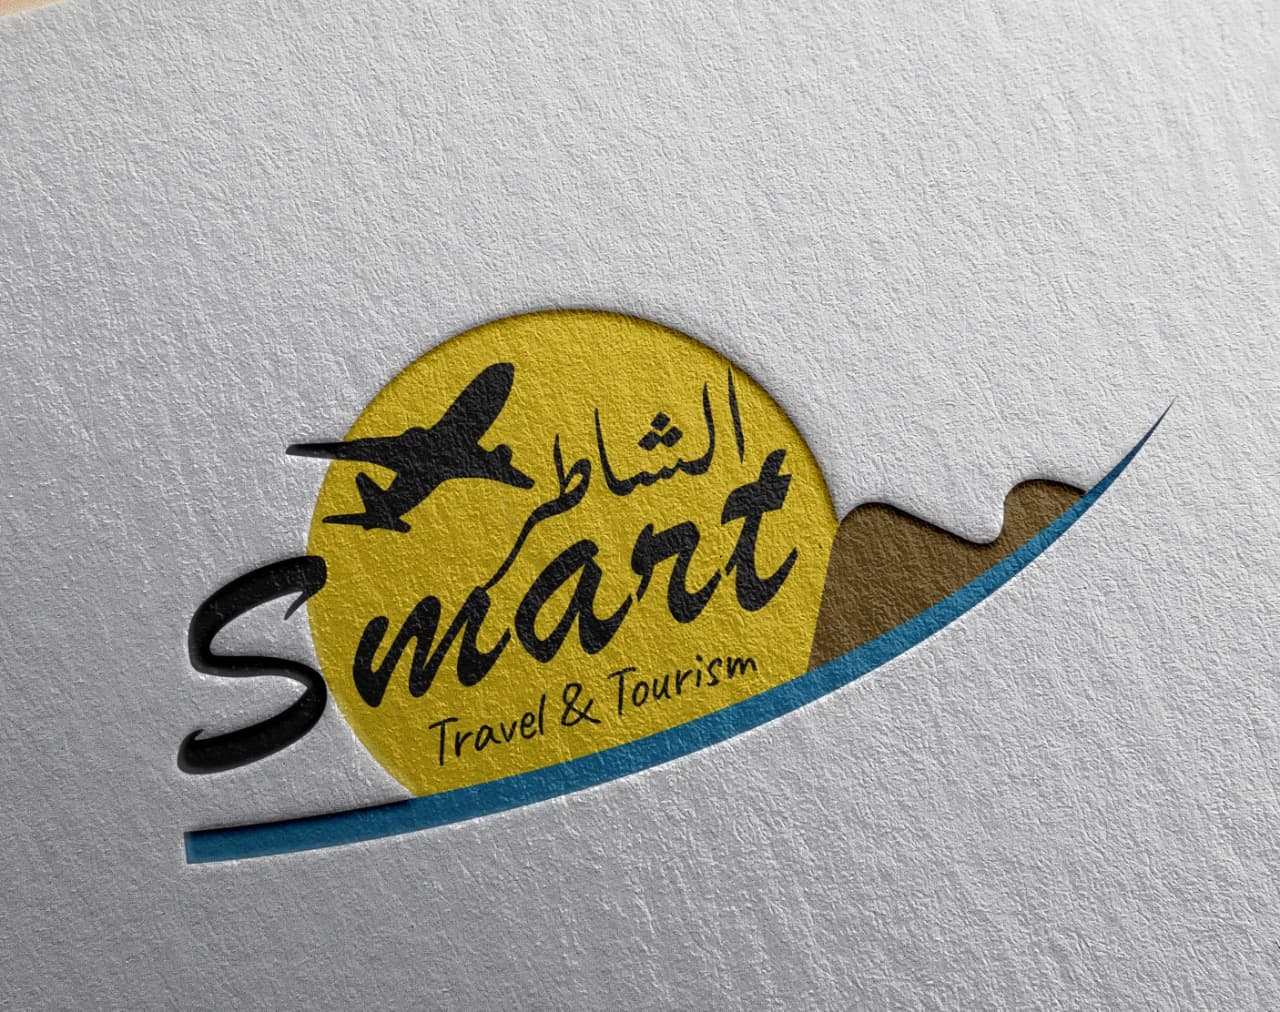 Tour Operator in Oman | Smart Travel And Tourism | Muscat Day Tours